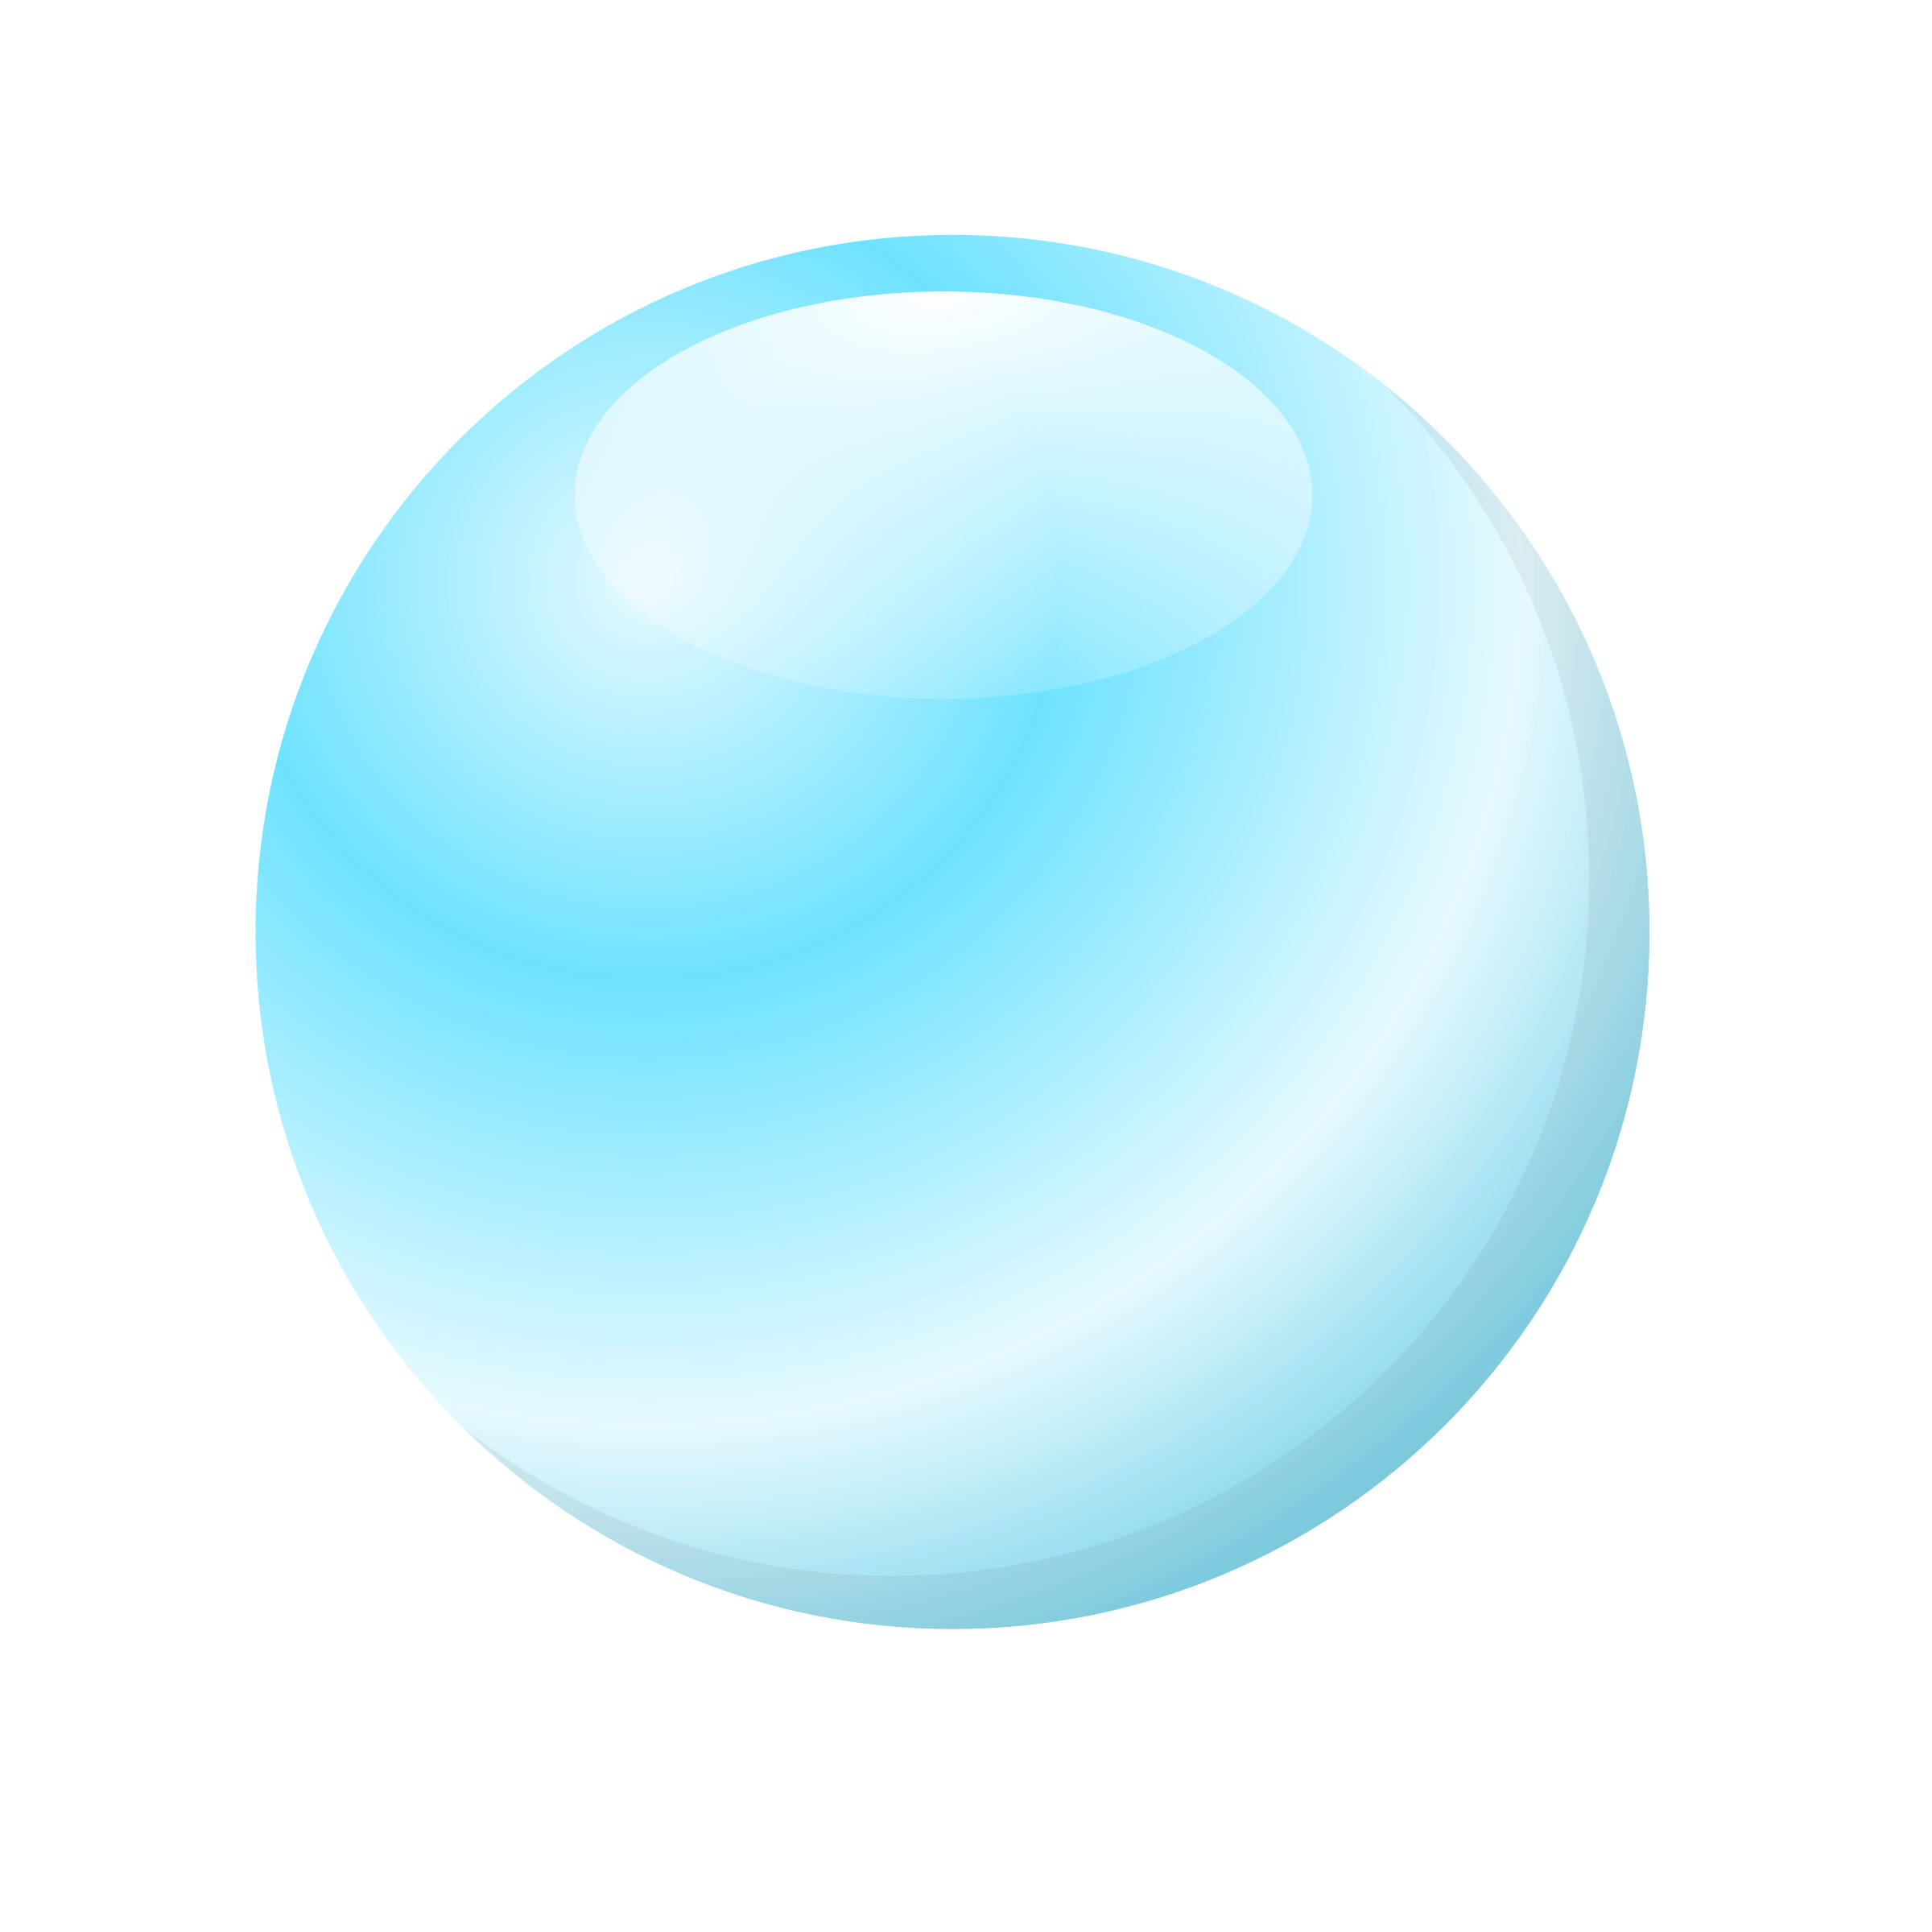 Bubble clipart soapy water Bubble White White Background Soap